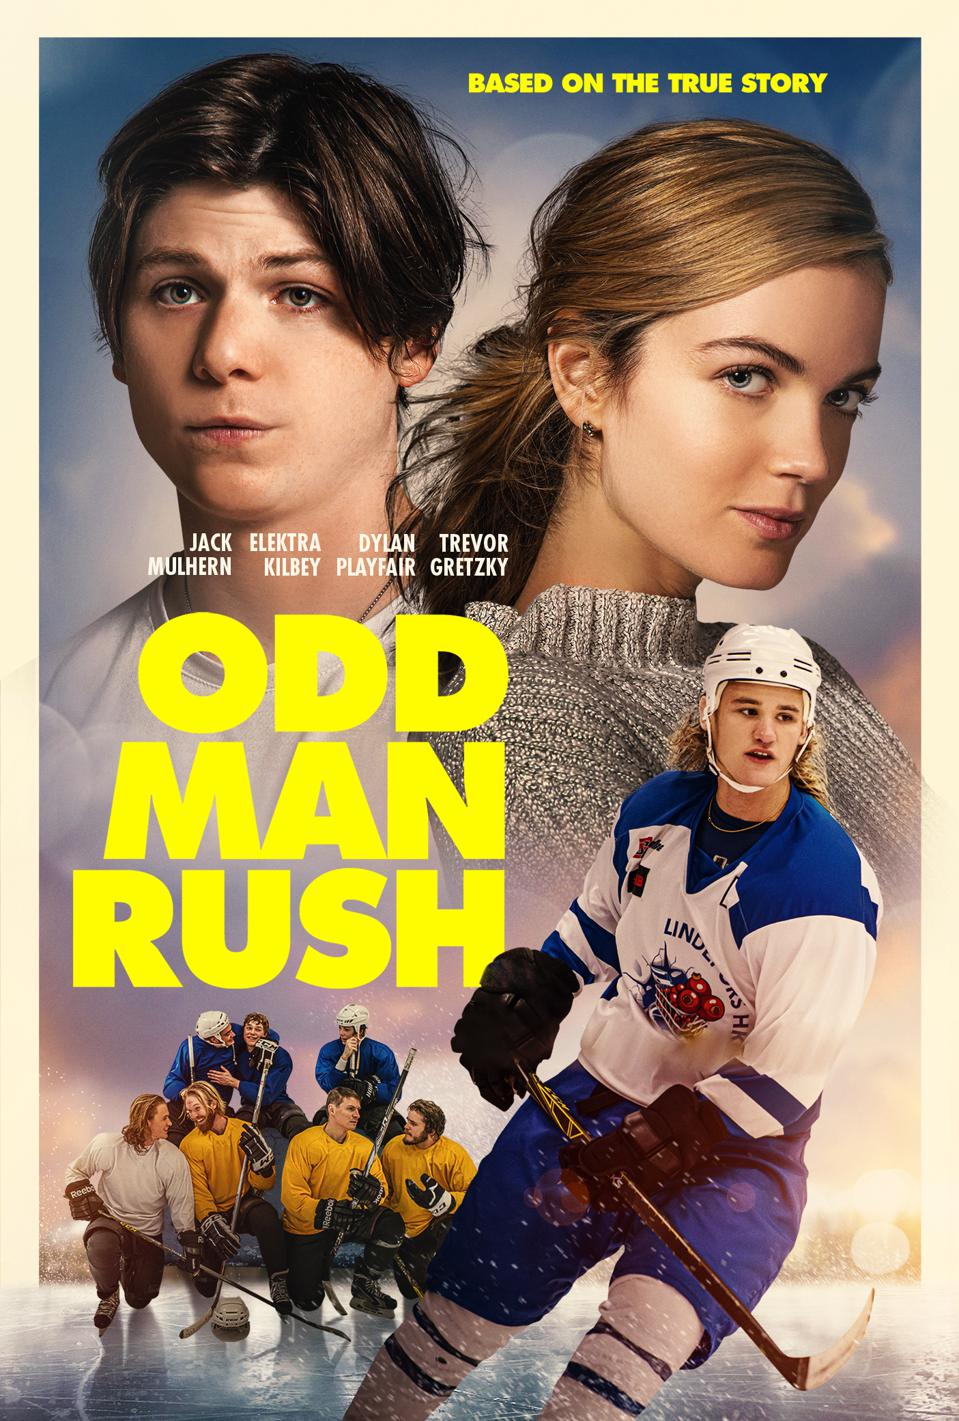 Odd Man Rush, the movie based on the 2016 book by Bill Keenan.